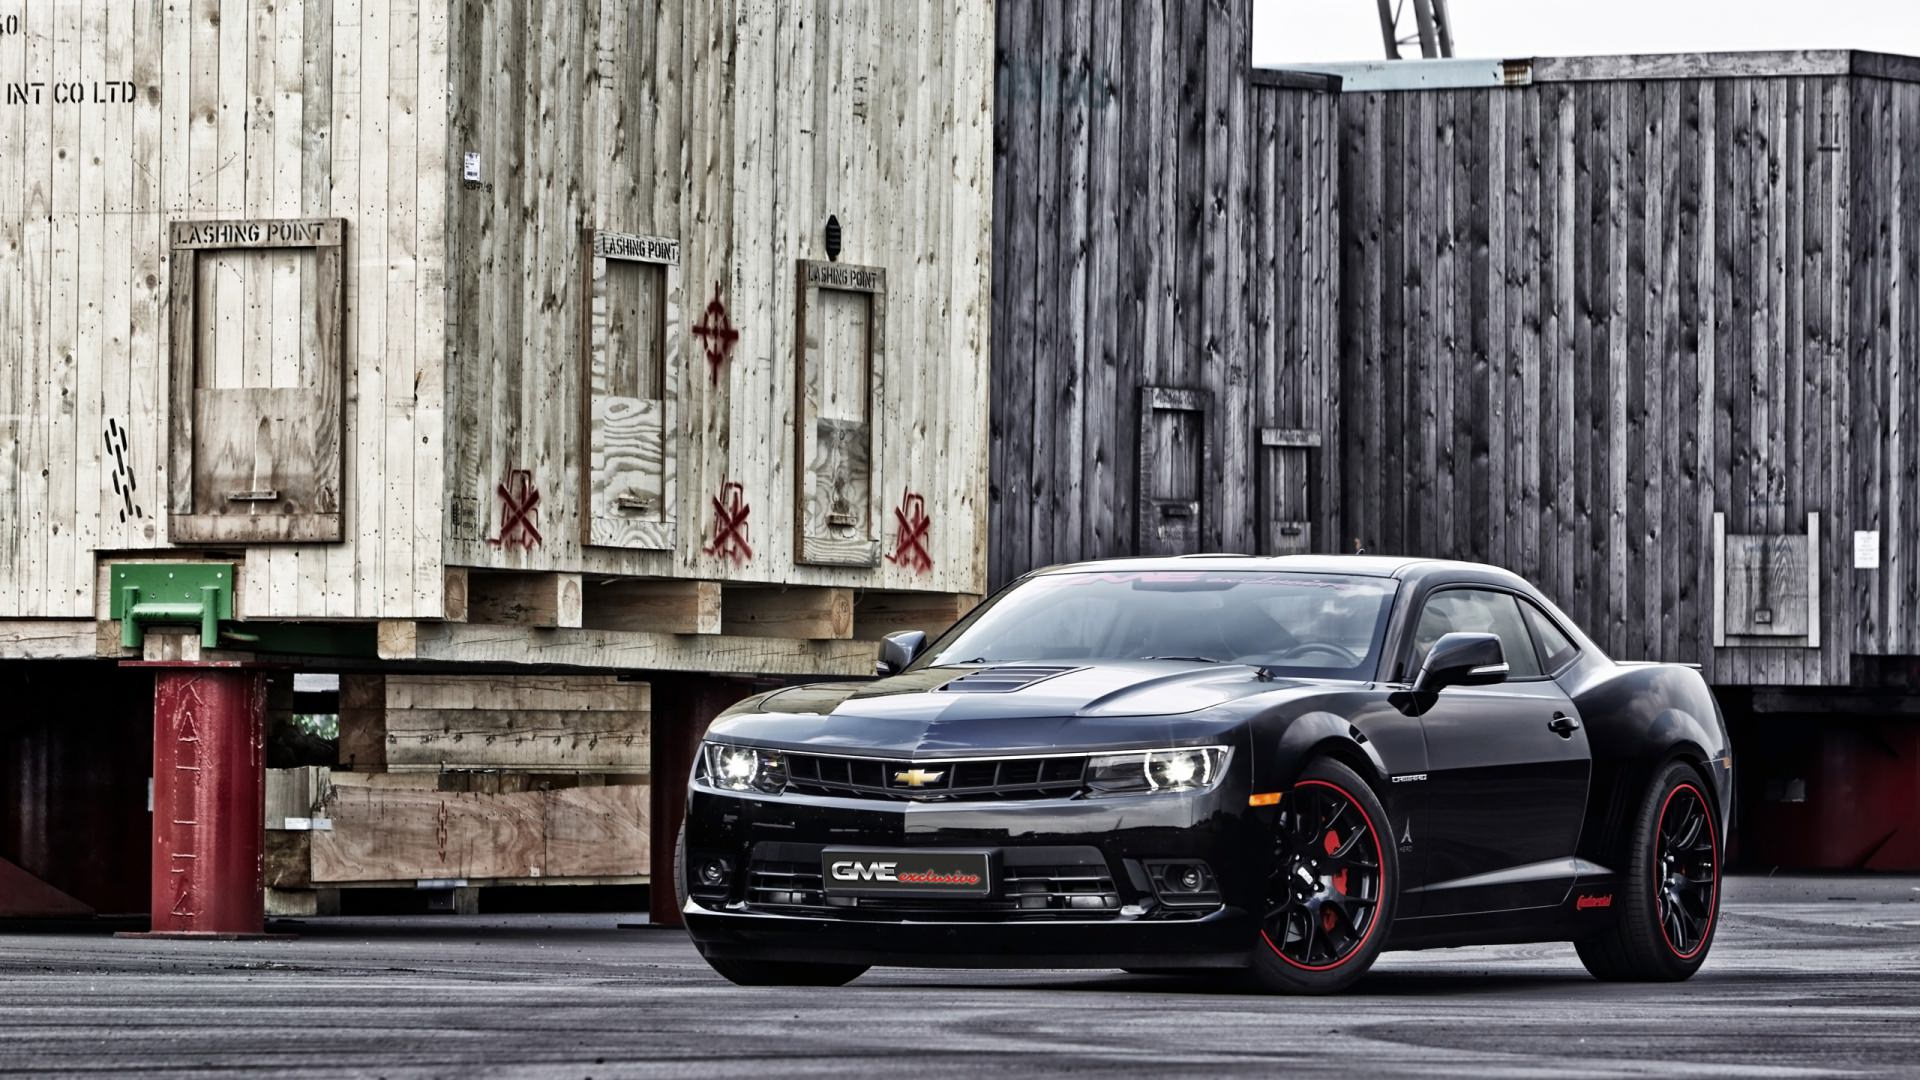 HD Chevrolet Background